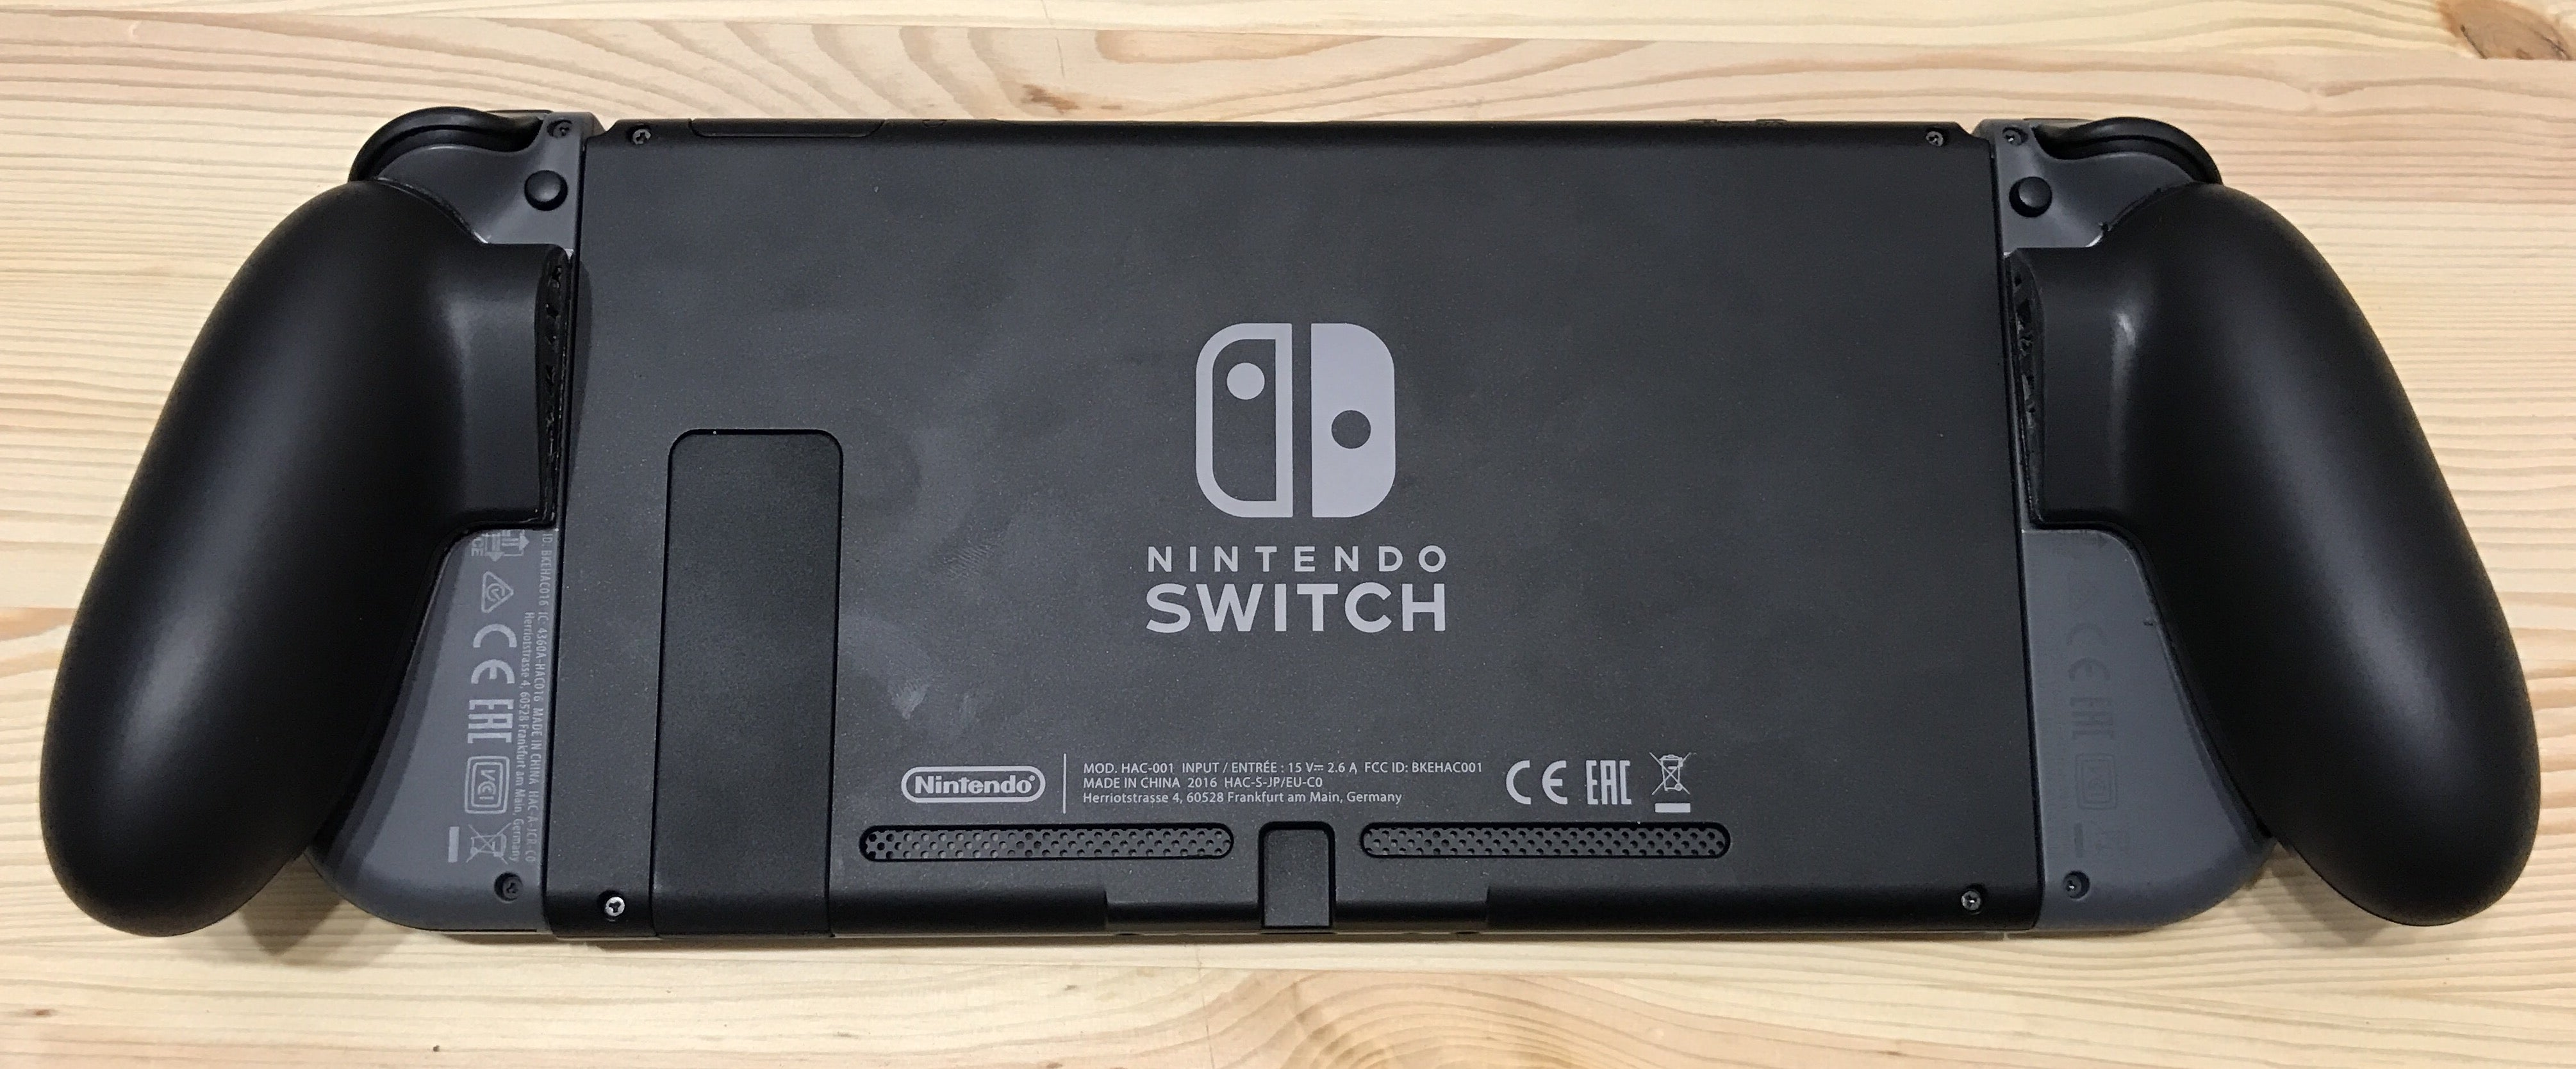 Six DIY Hacks To Improve The Nintendo Switch